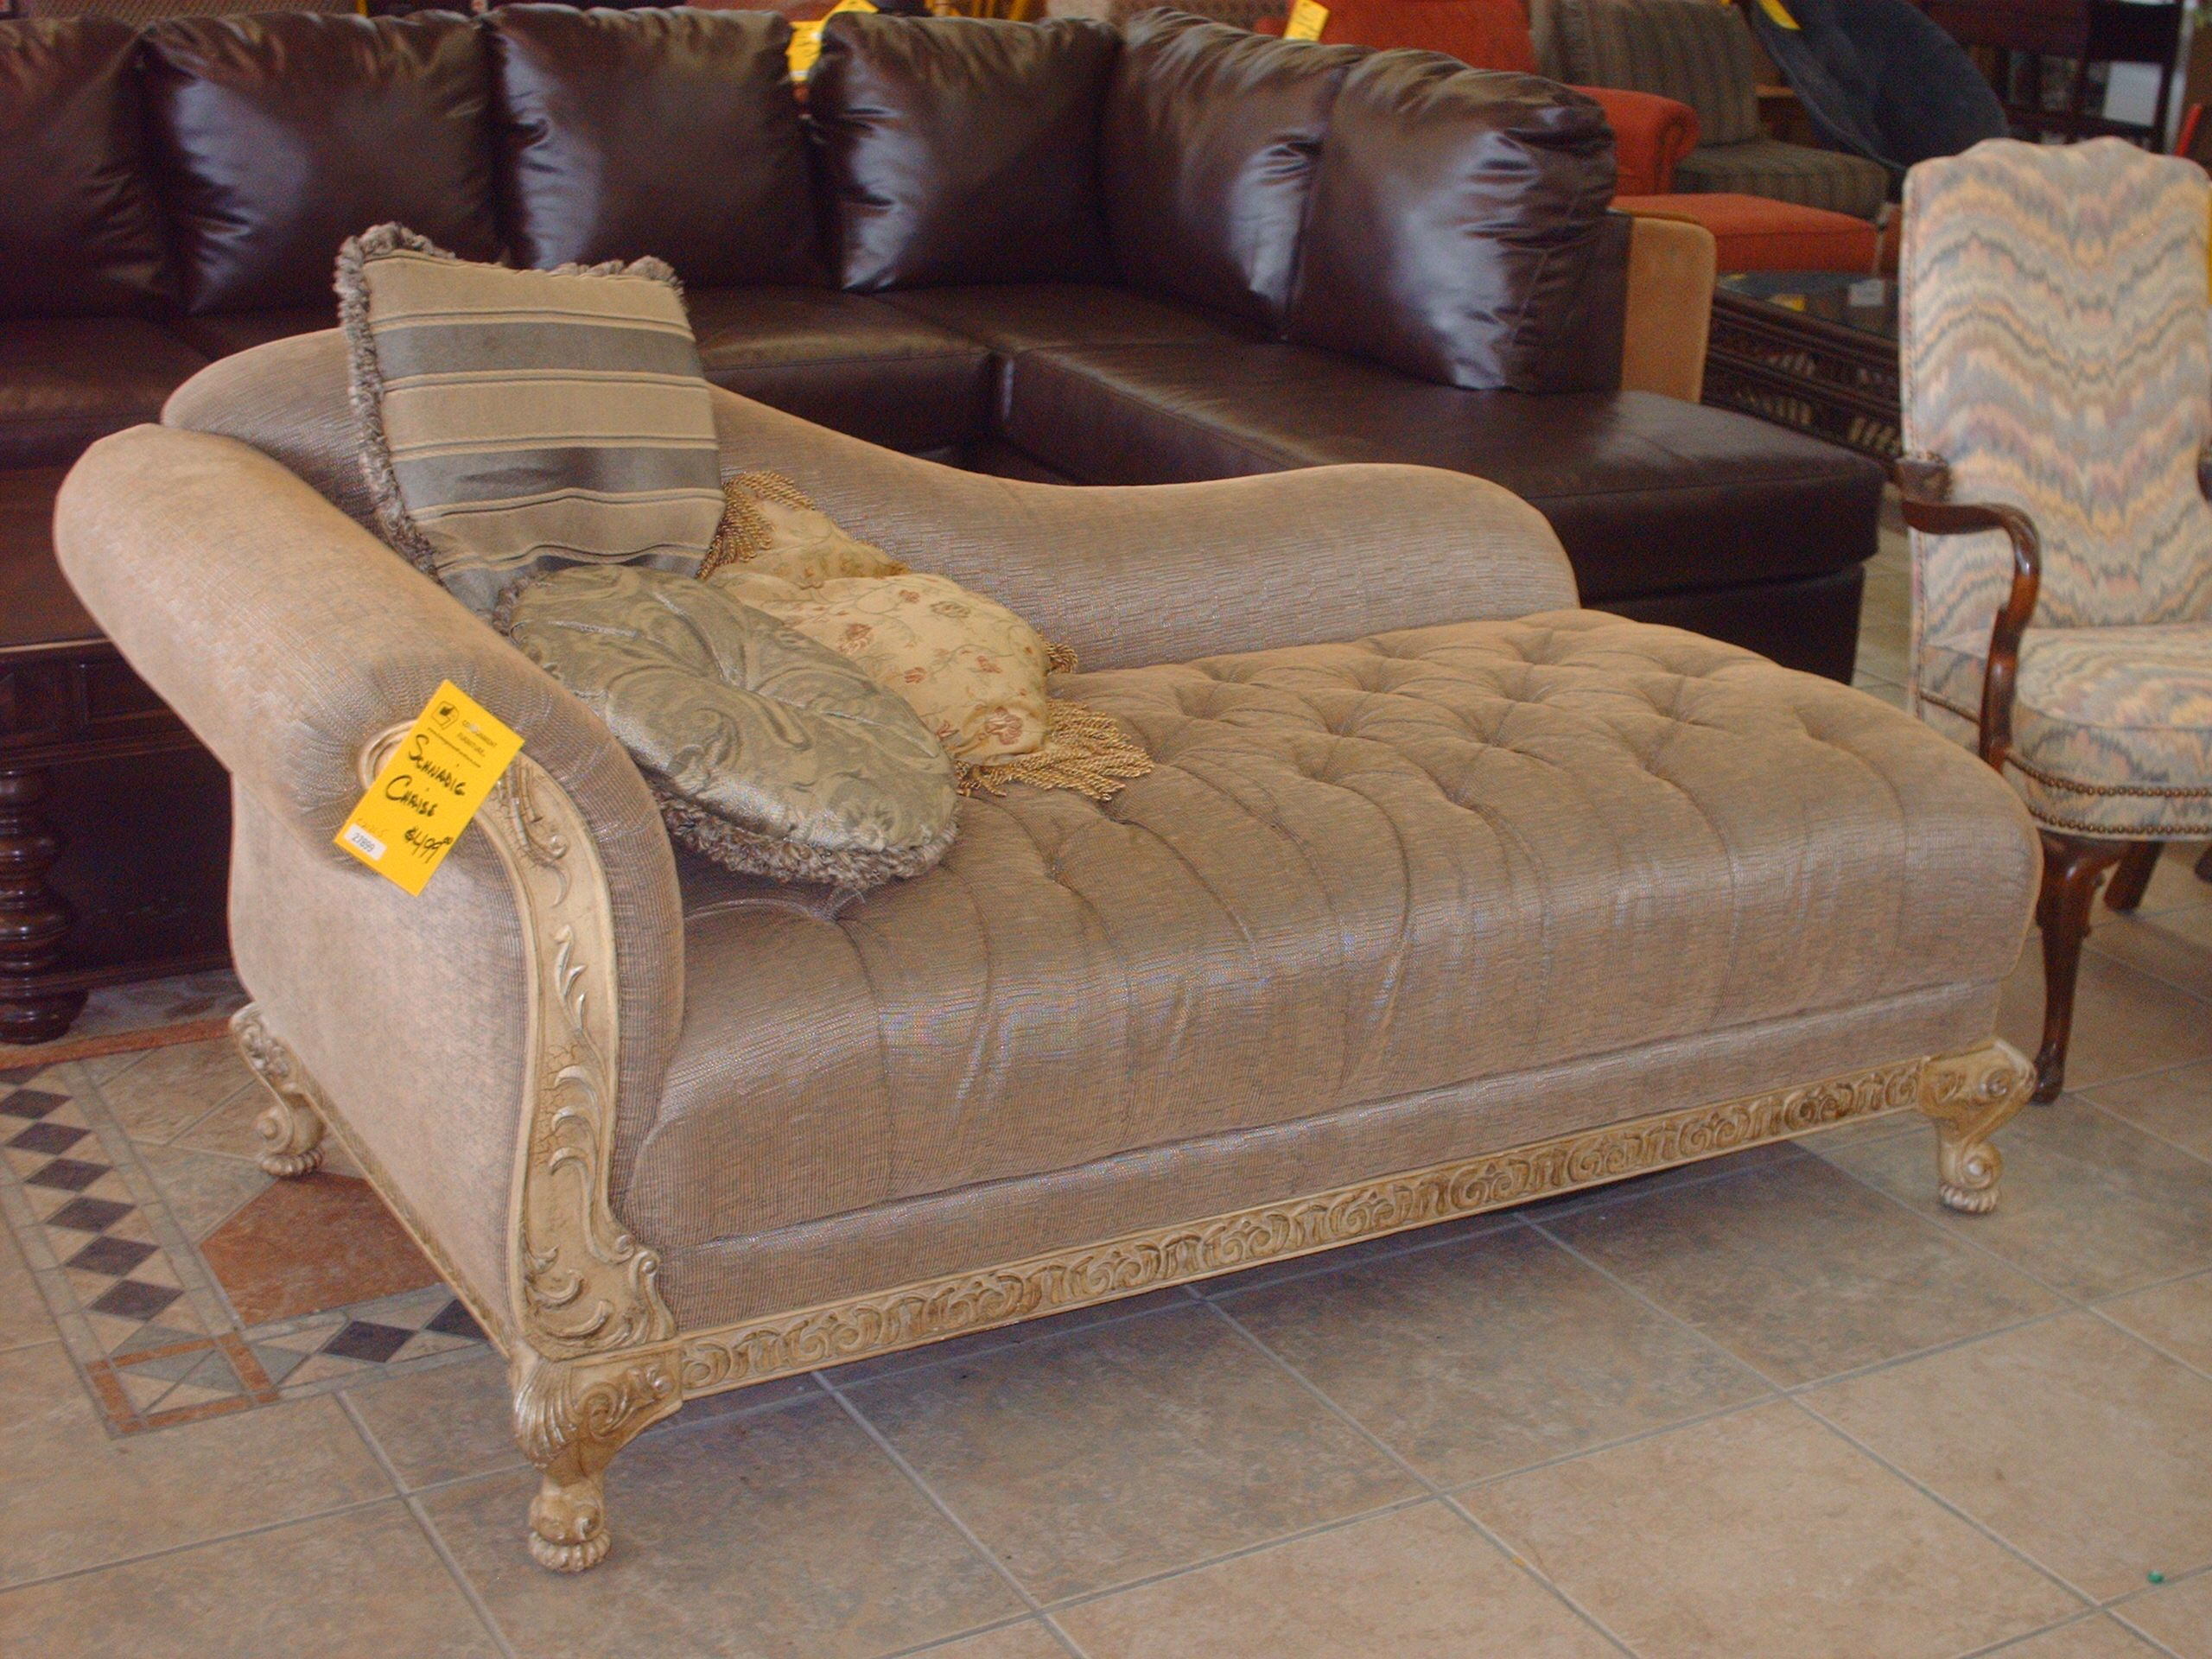 Consignment Furniture Schnadig Chaise 425 Tulsa Ok